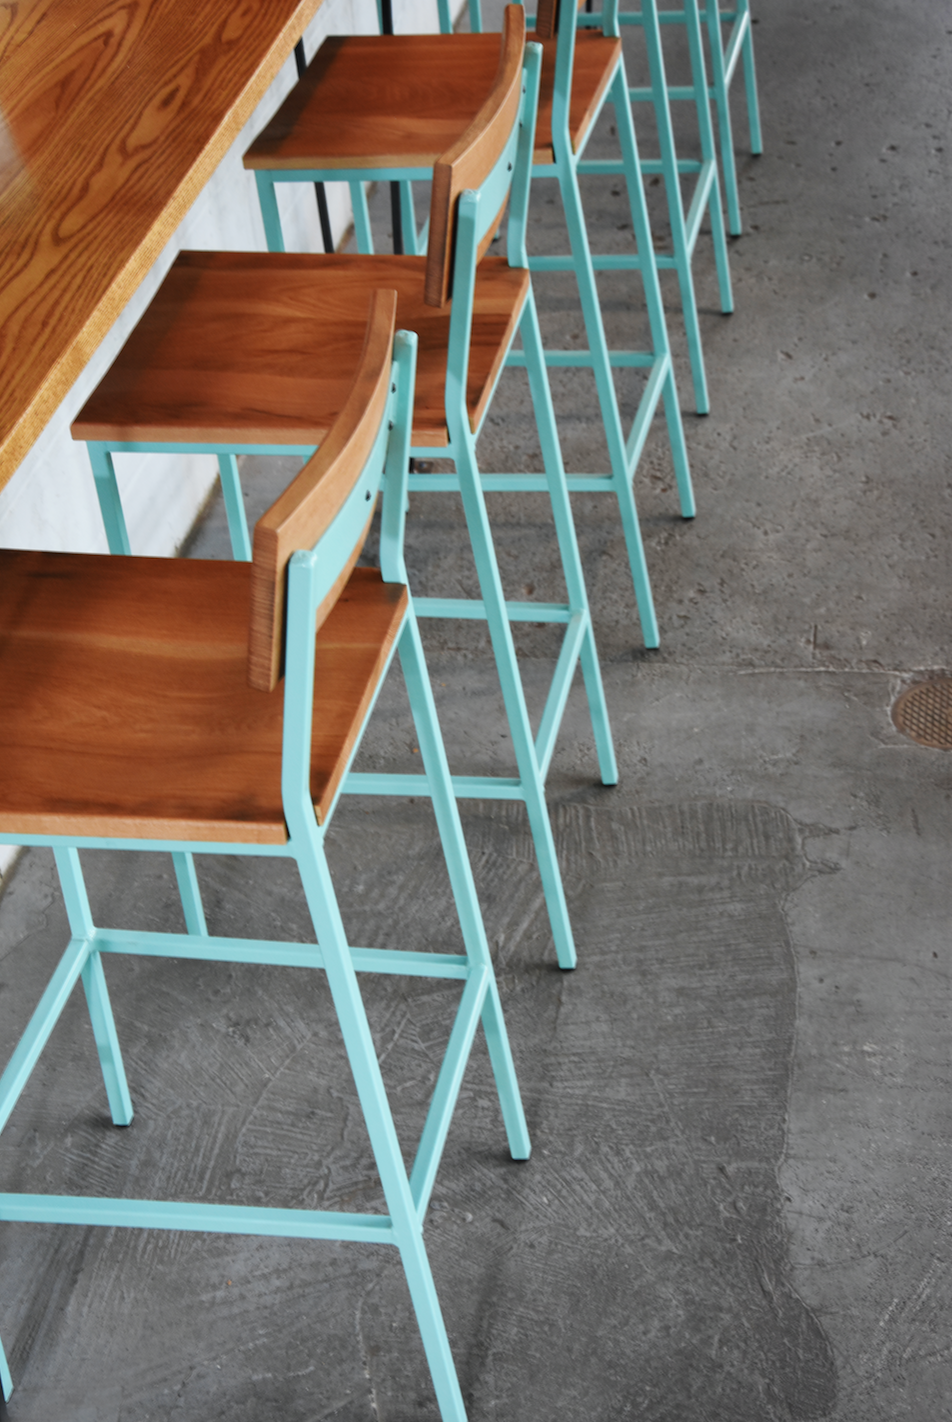 Transit stool by crow works custom powder coating seating industrial modern furniture commercial restaurant bar americanmade madeinusa